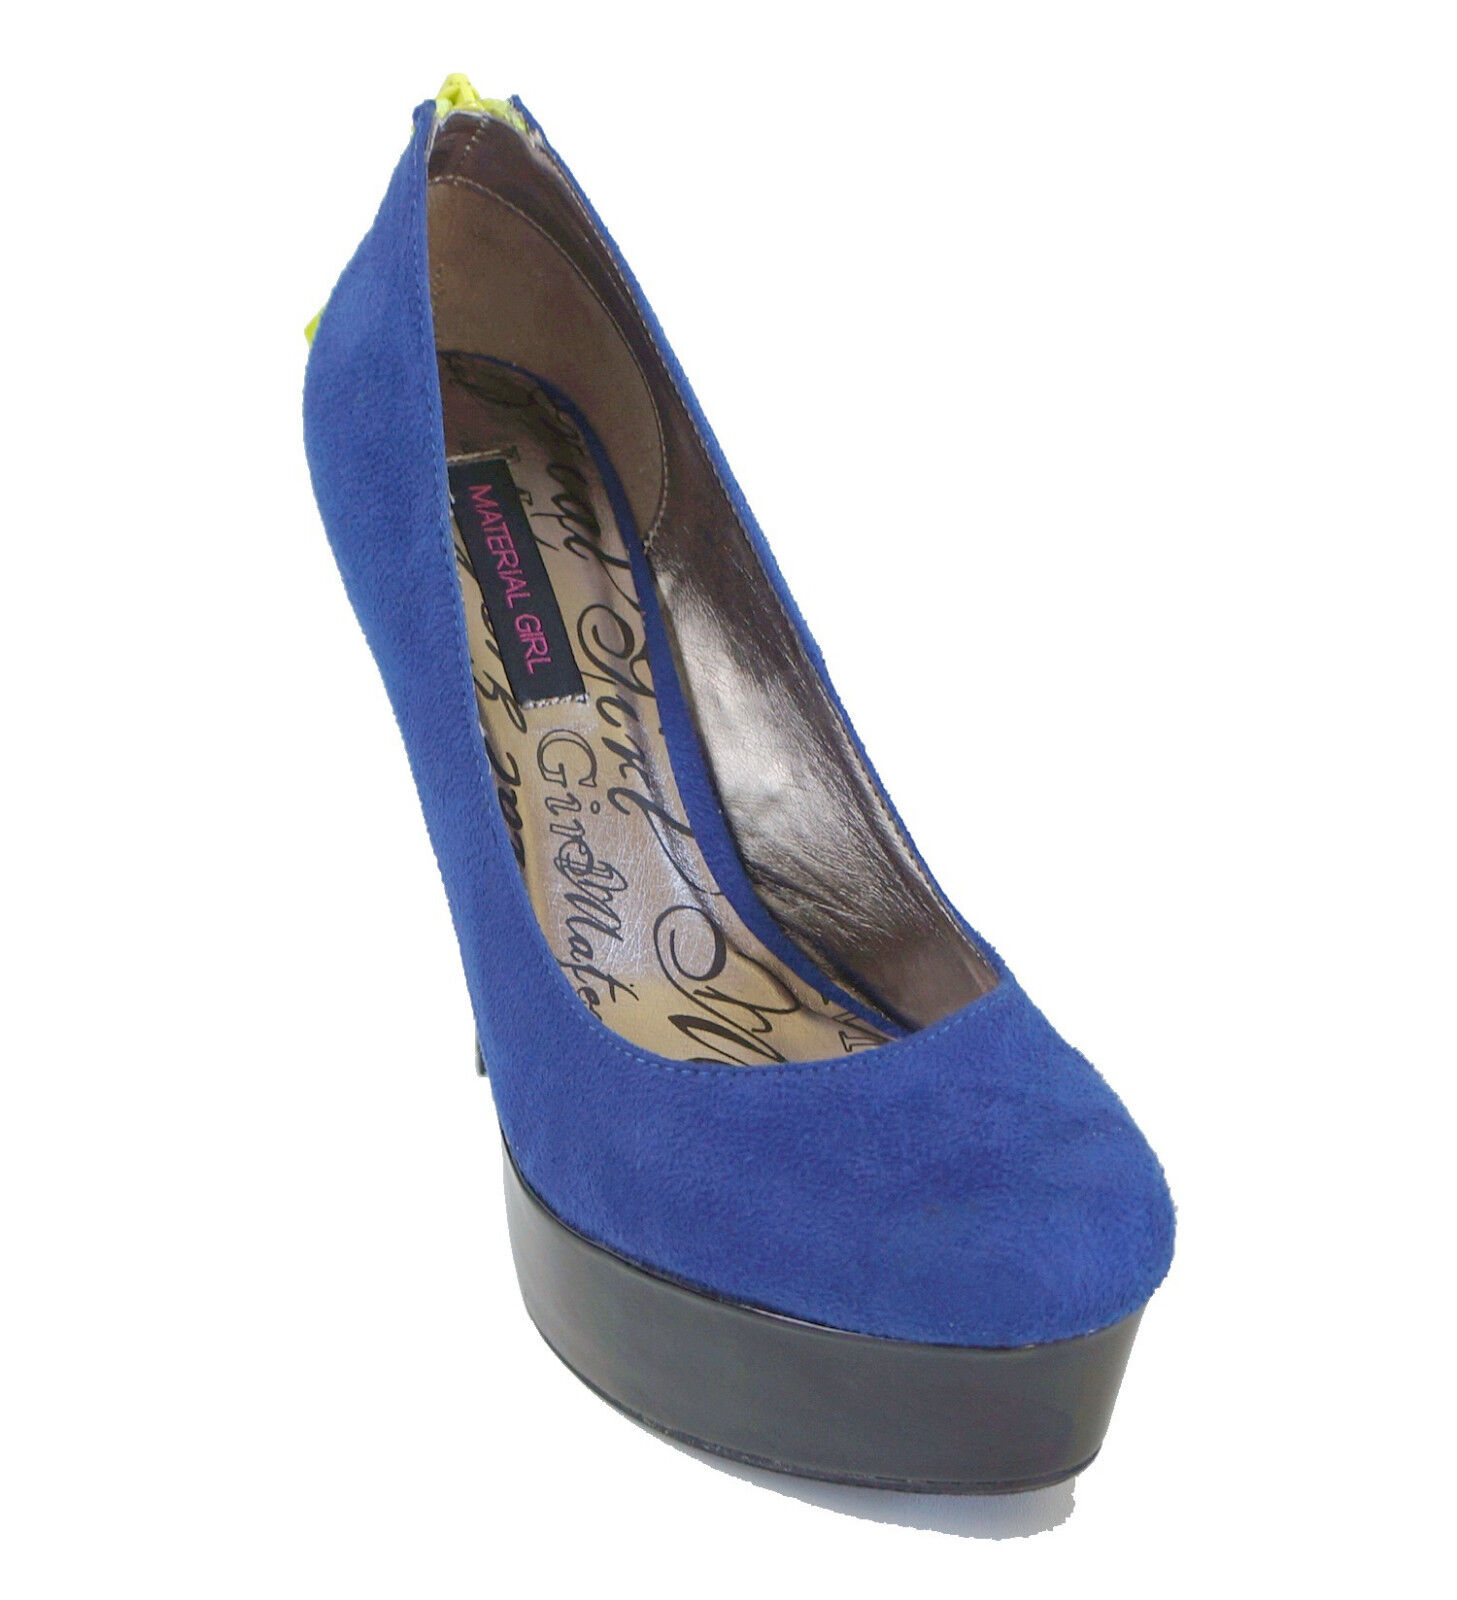 New! Material Platform Girl Blue Faux Suede Platform Material Pumps MARCEL Women's Shoes 9 f42144